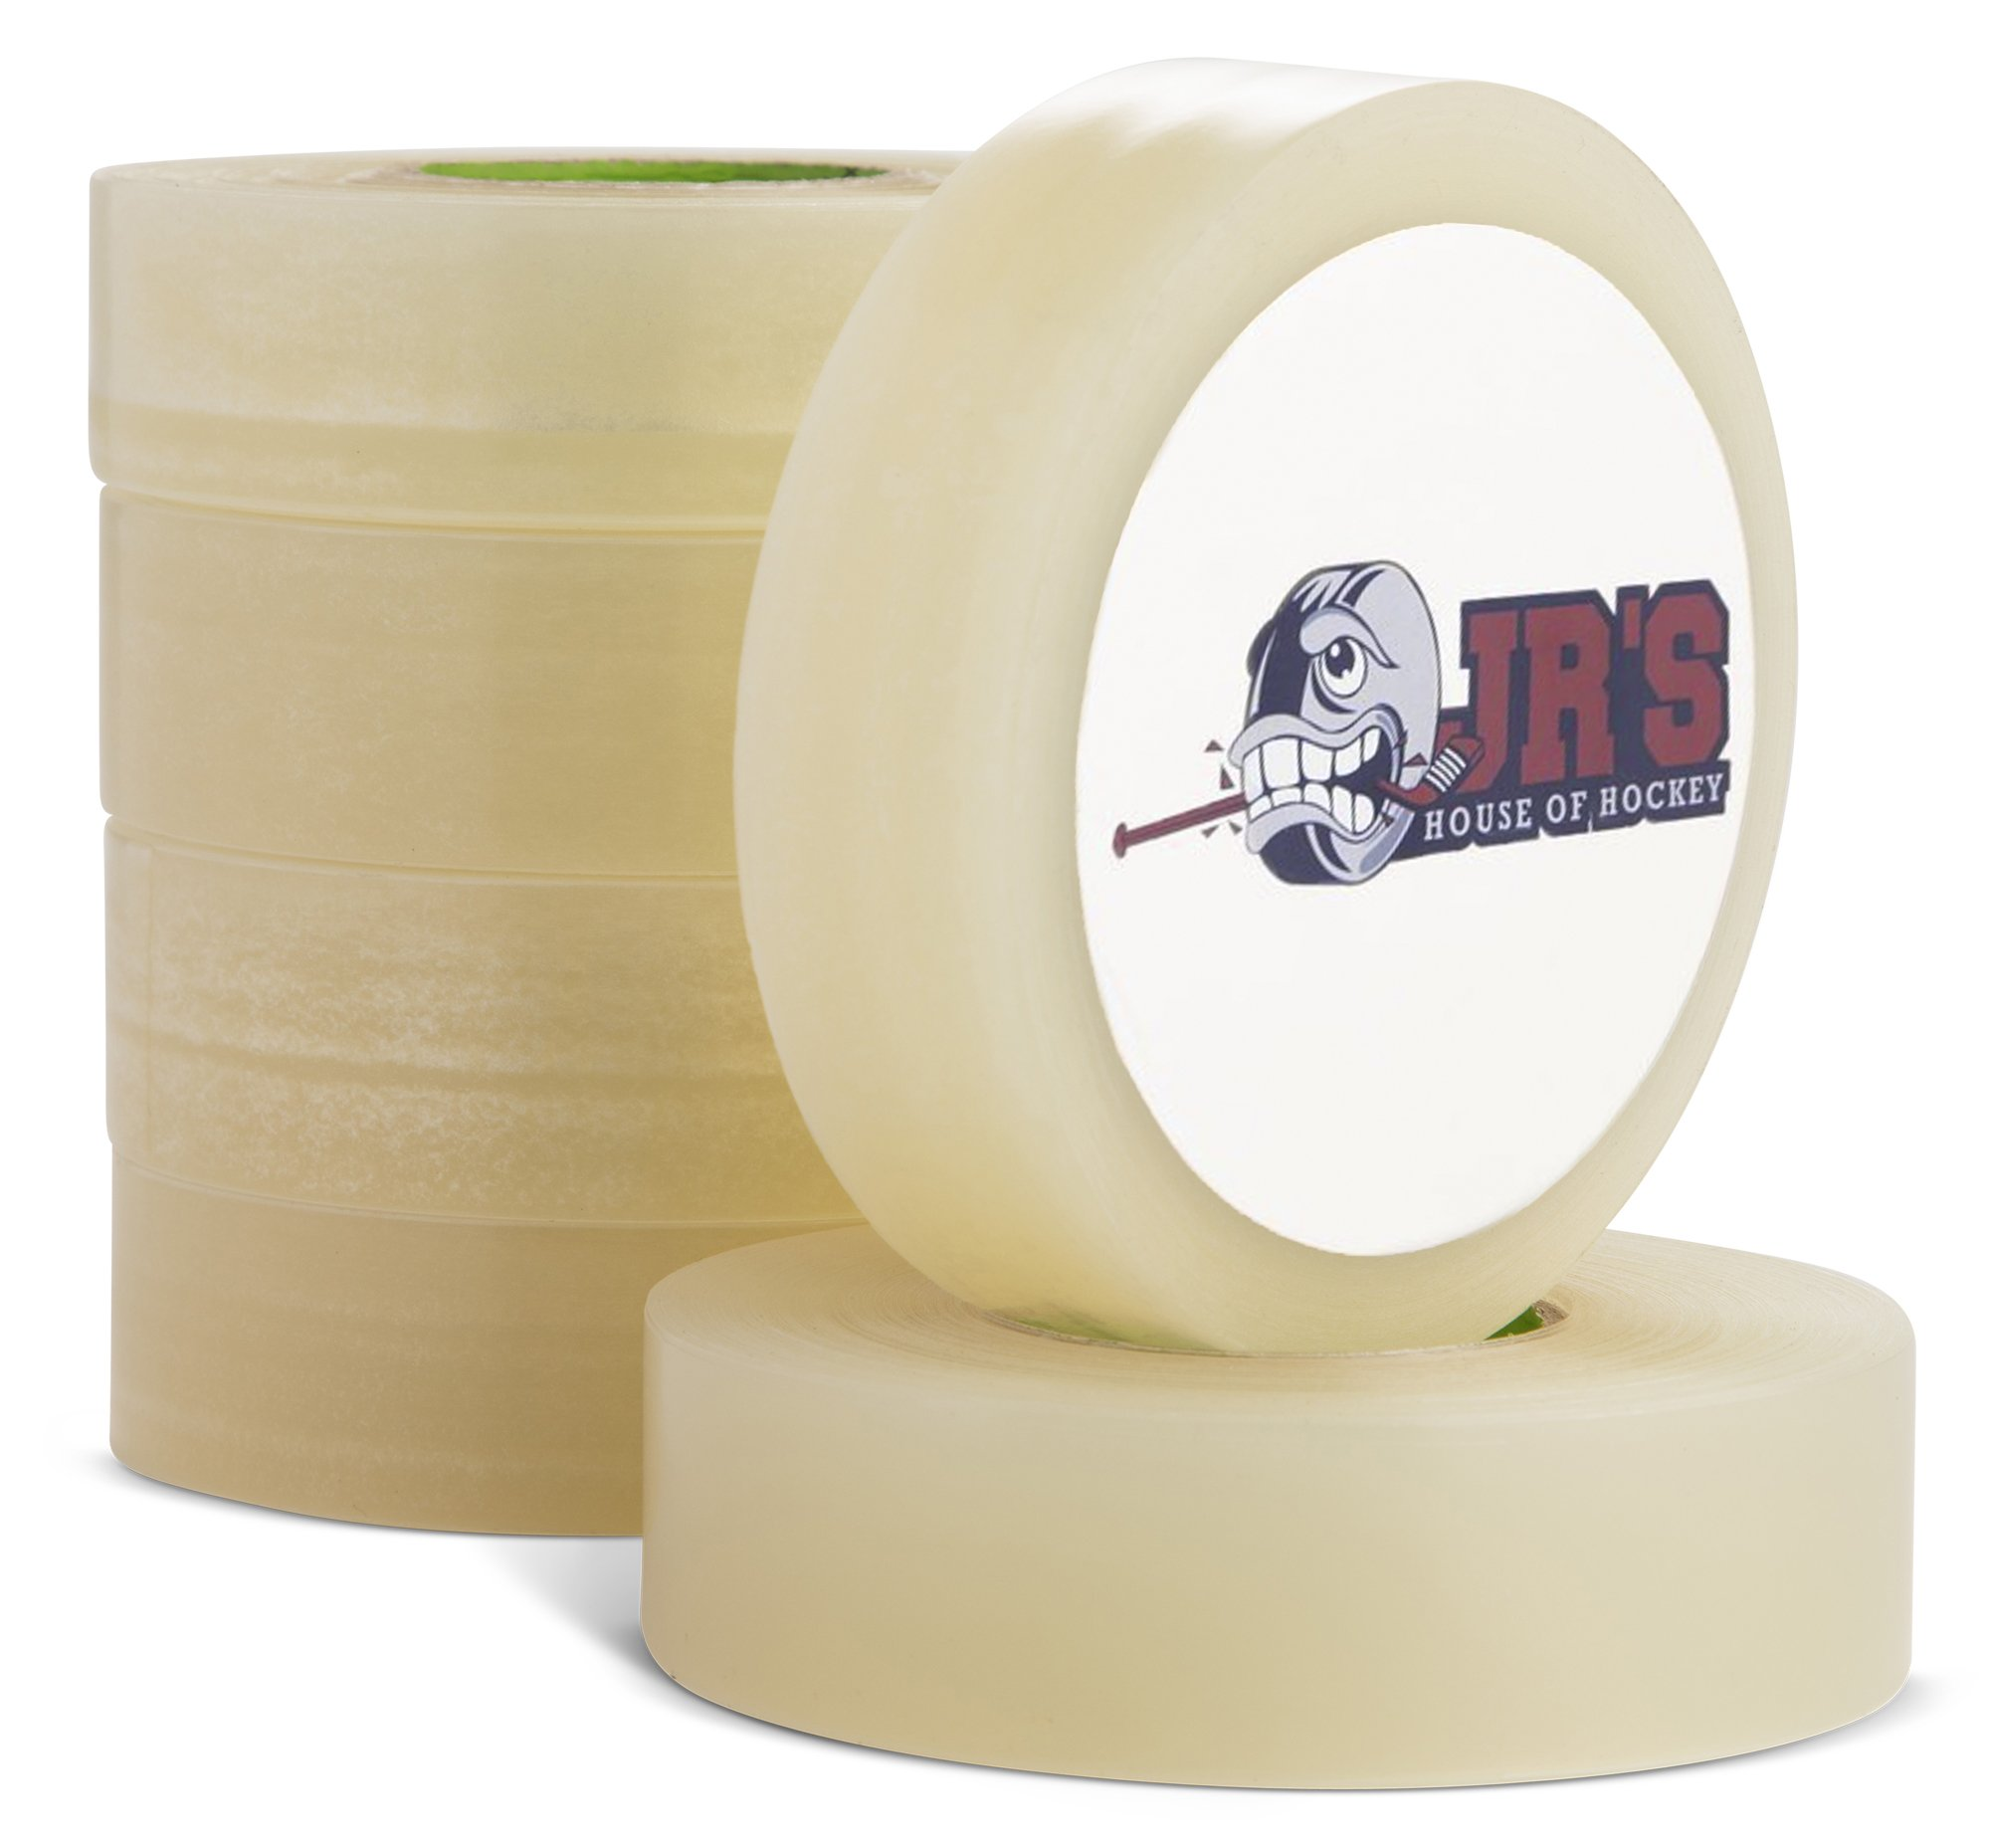 Hockey and Soccer Sports Tape (6 Pack) - Clear, Strong, Hypoallergenic Poly Athletic Tape For Shin Pads, Guards, and Socks, Adhesive Tapes For the Ice and Field, Lacrosse, Cricket and Sport Training